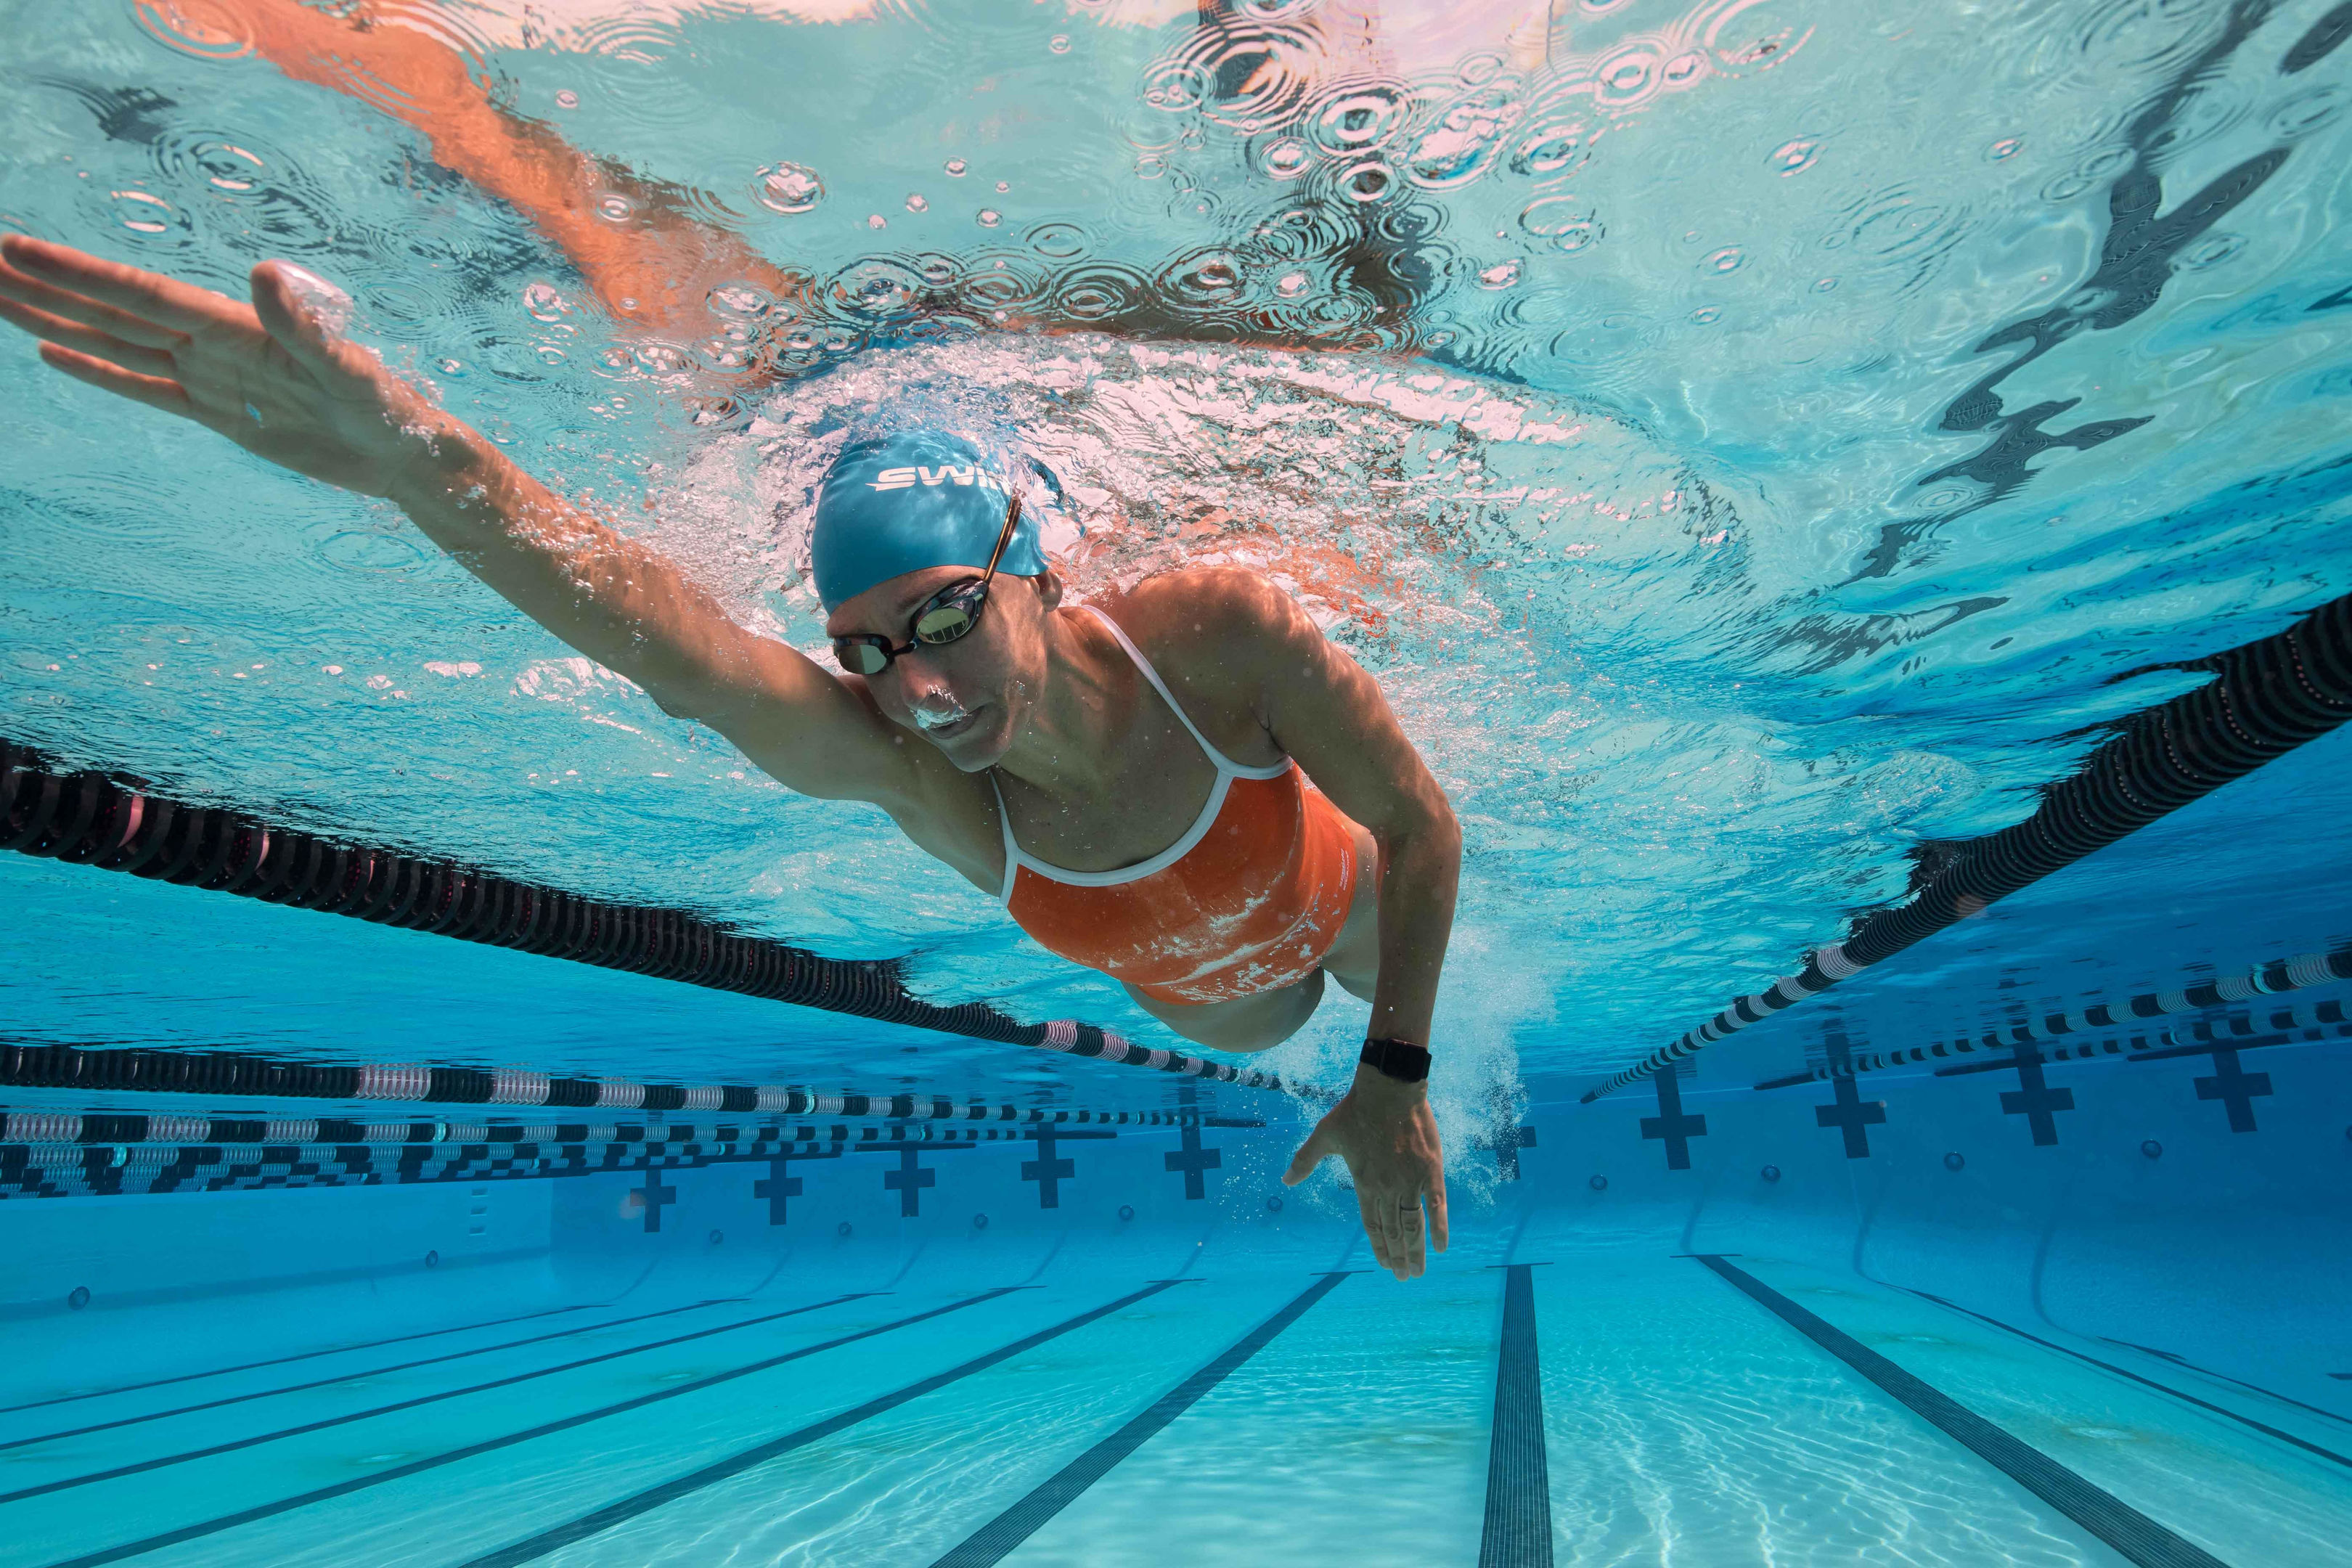 Who is The New Charming Star in Swimming Race